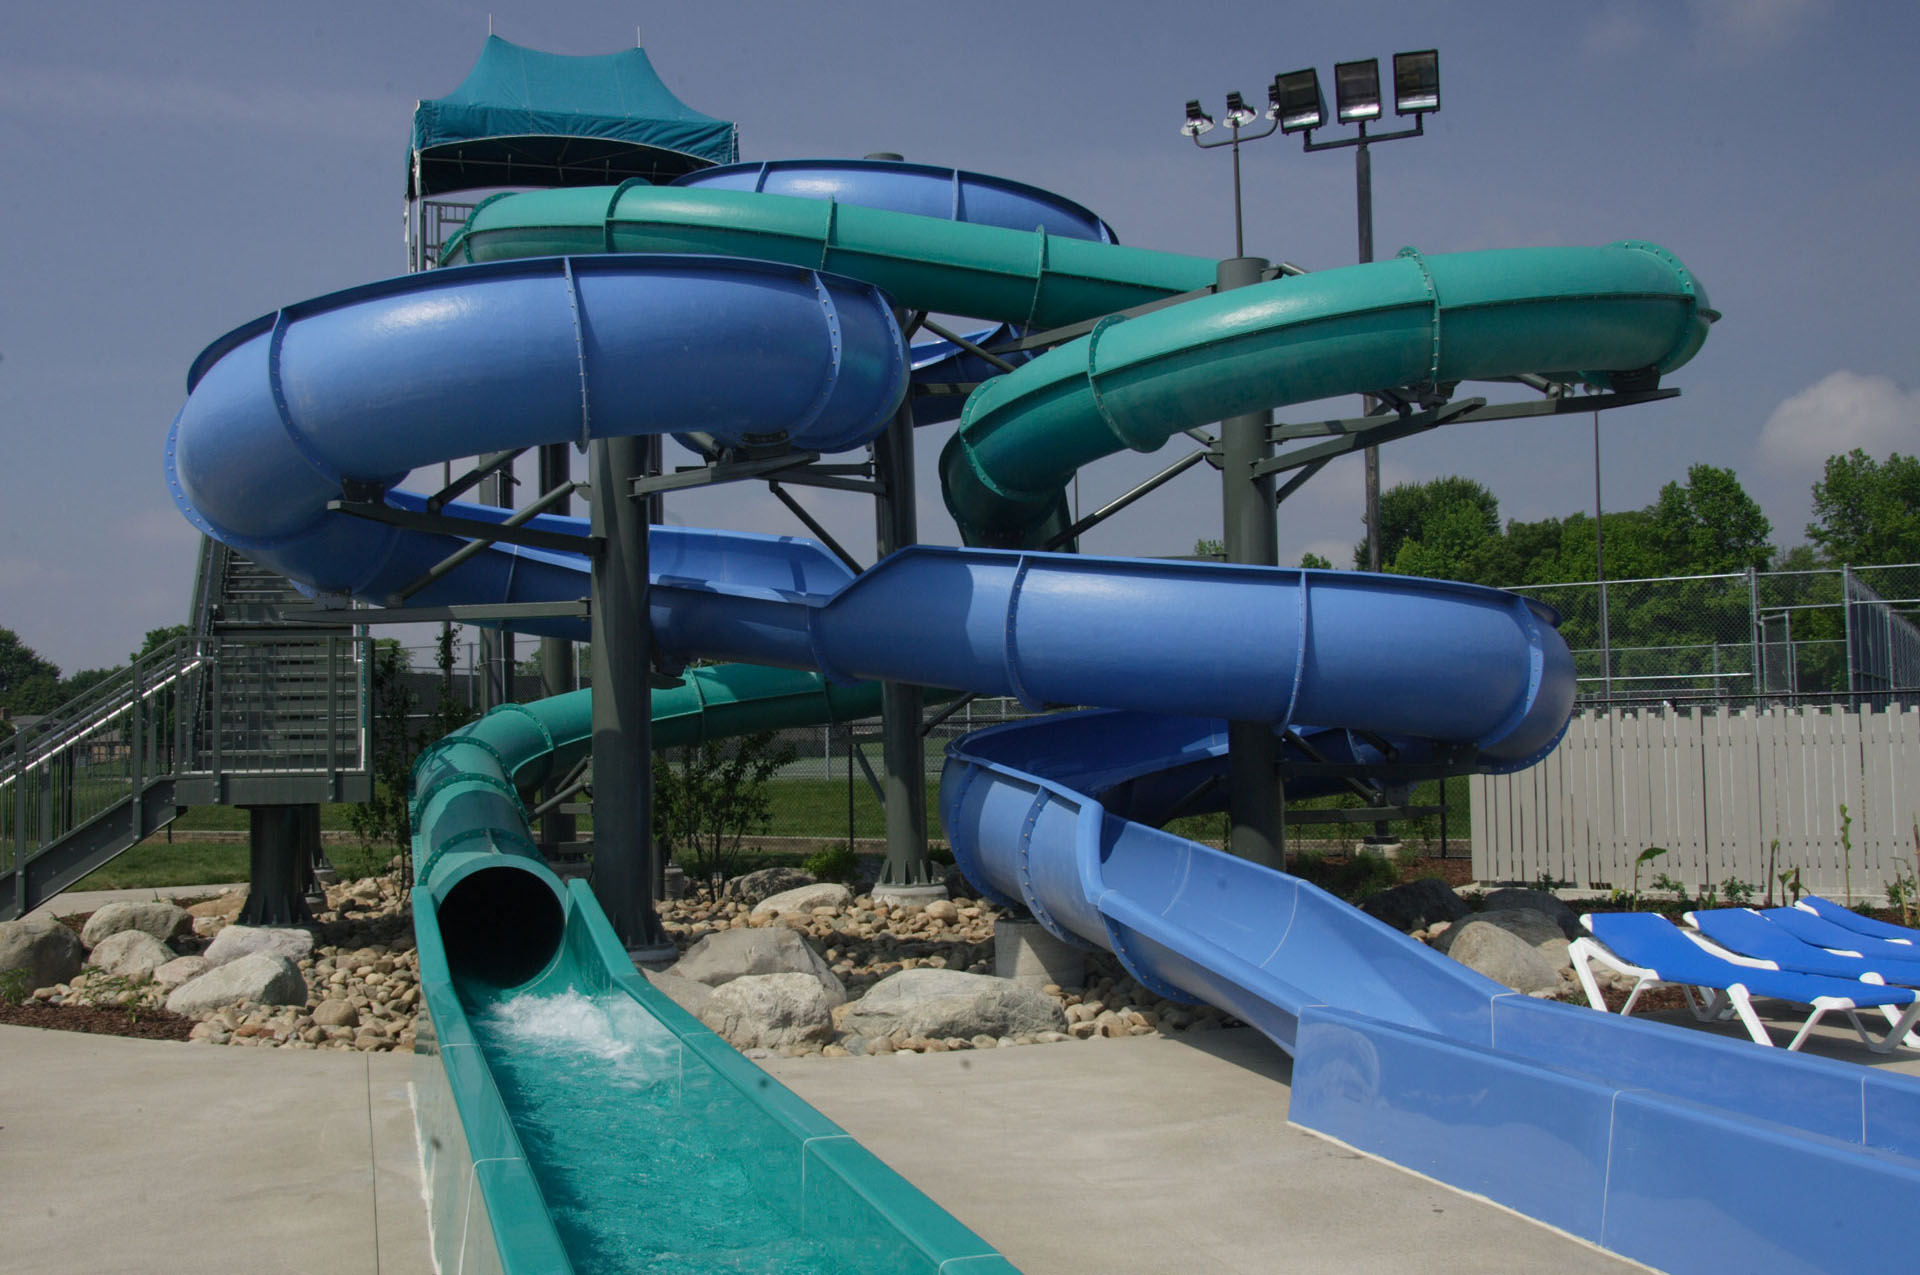 Reed Road Water Park